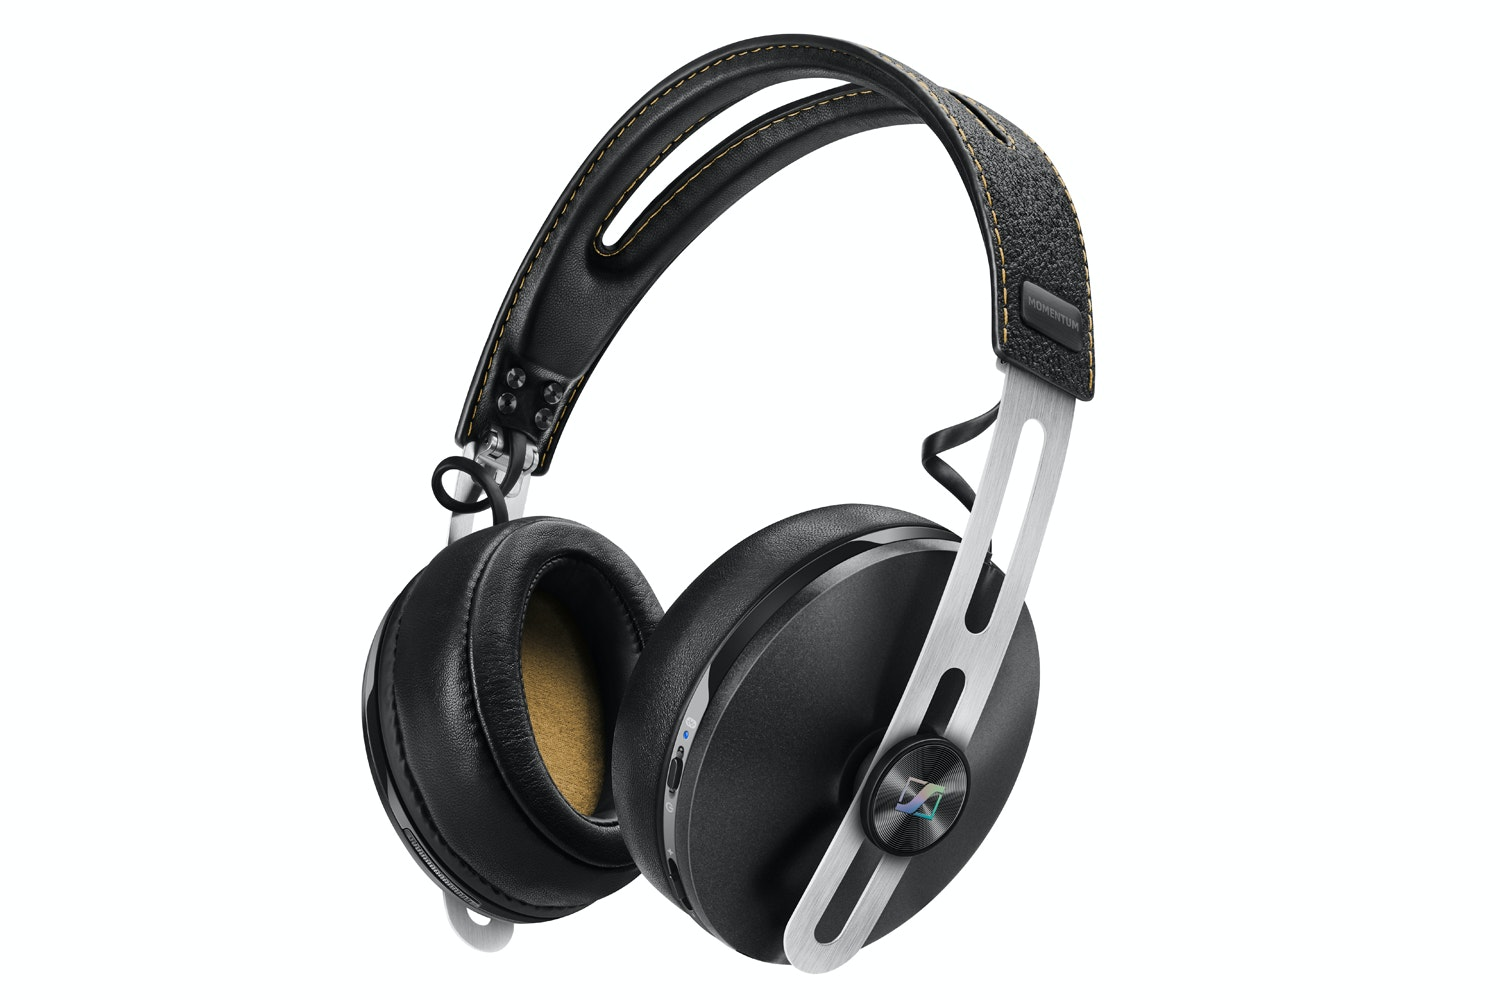 Sennheiser Momentum 2.0 Over Ear Wireless Headphones | Black